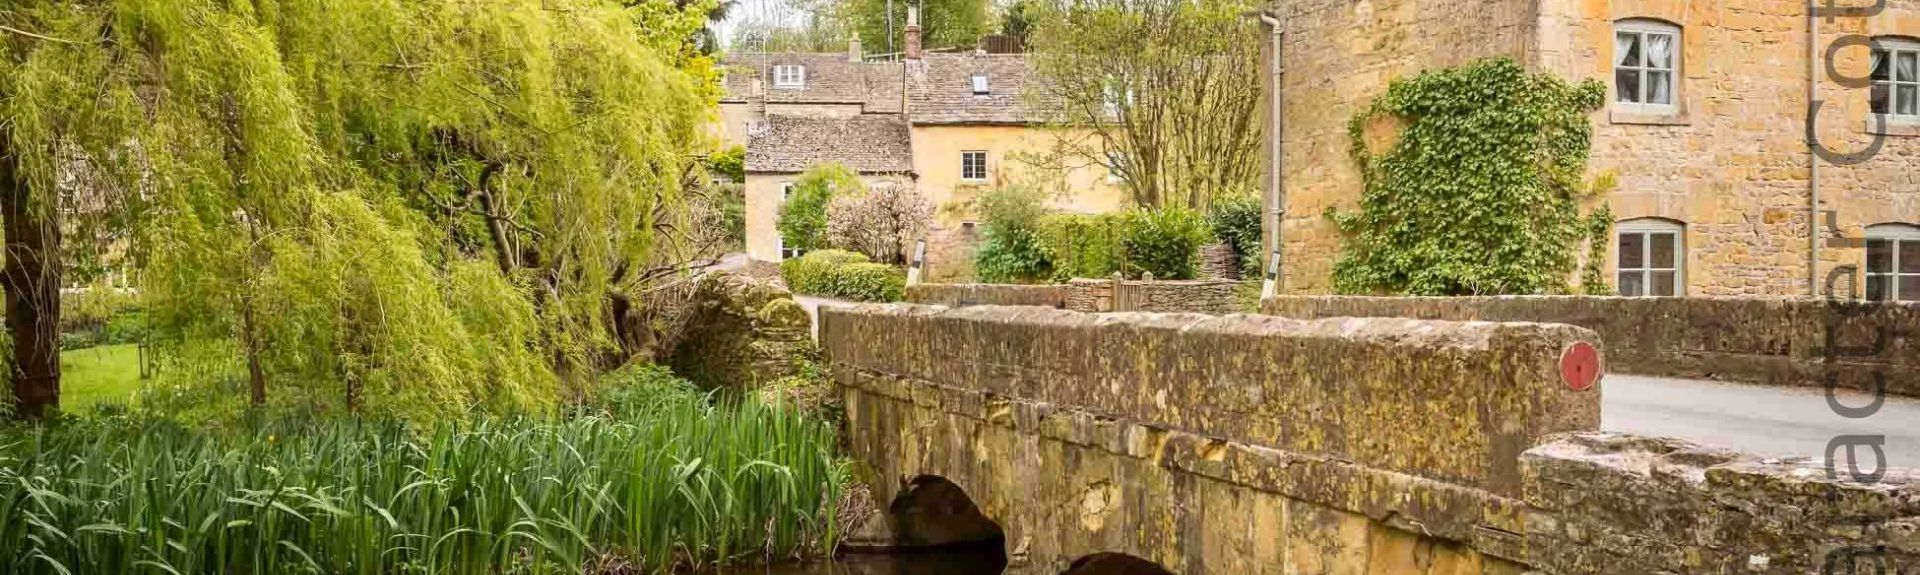 Cotswold District, Inglaterra, Reino Unido